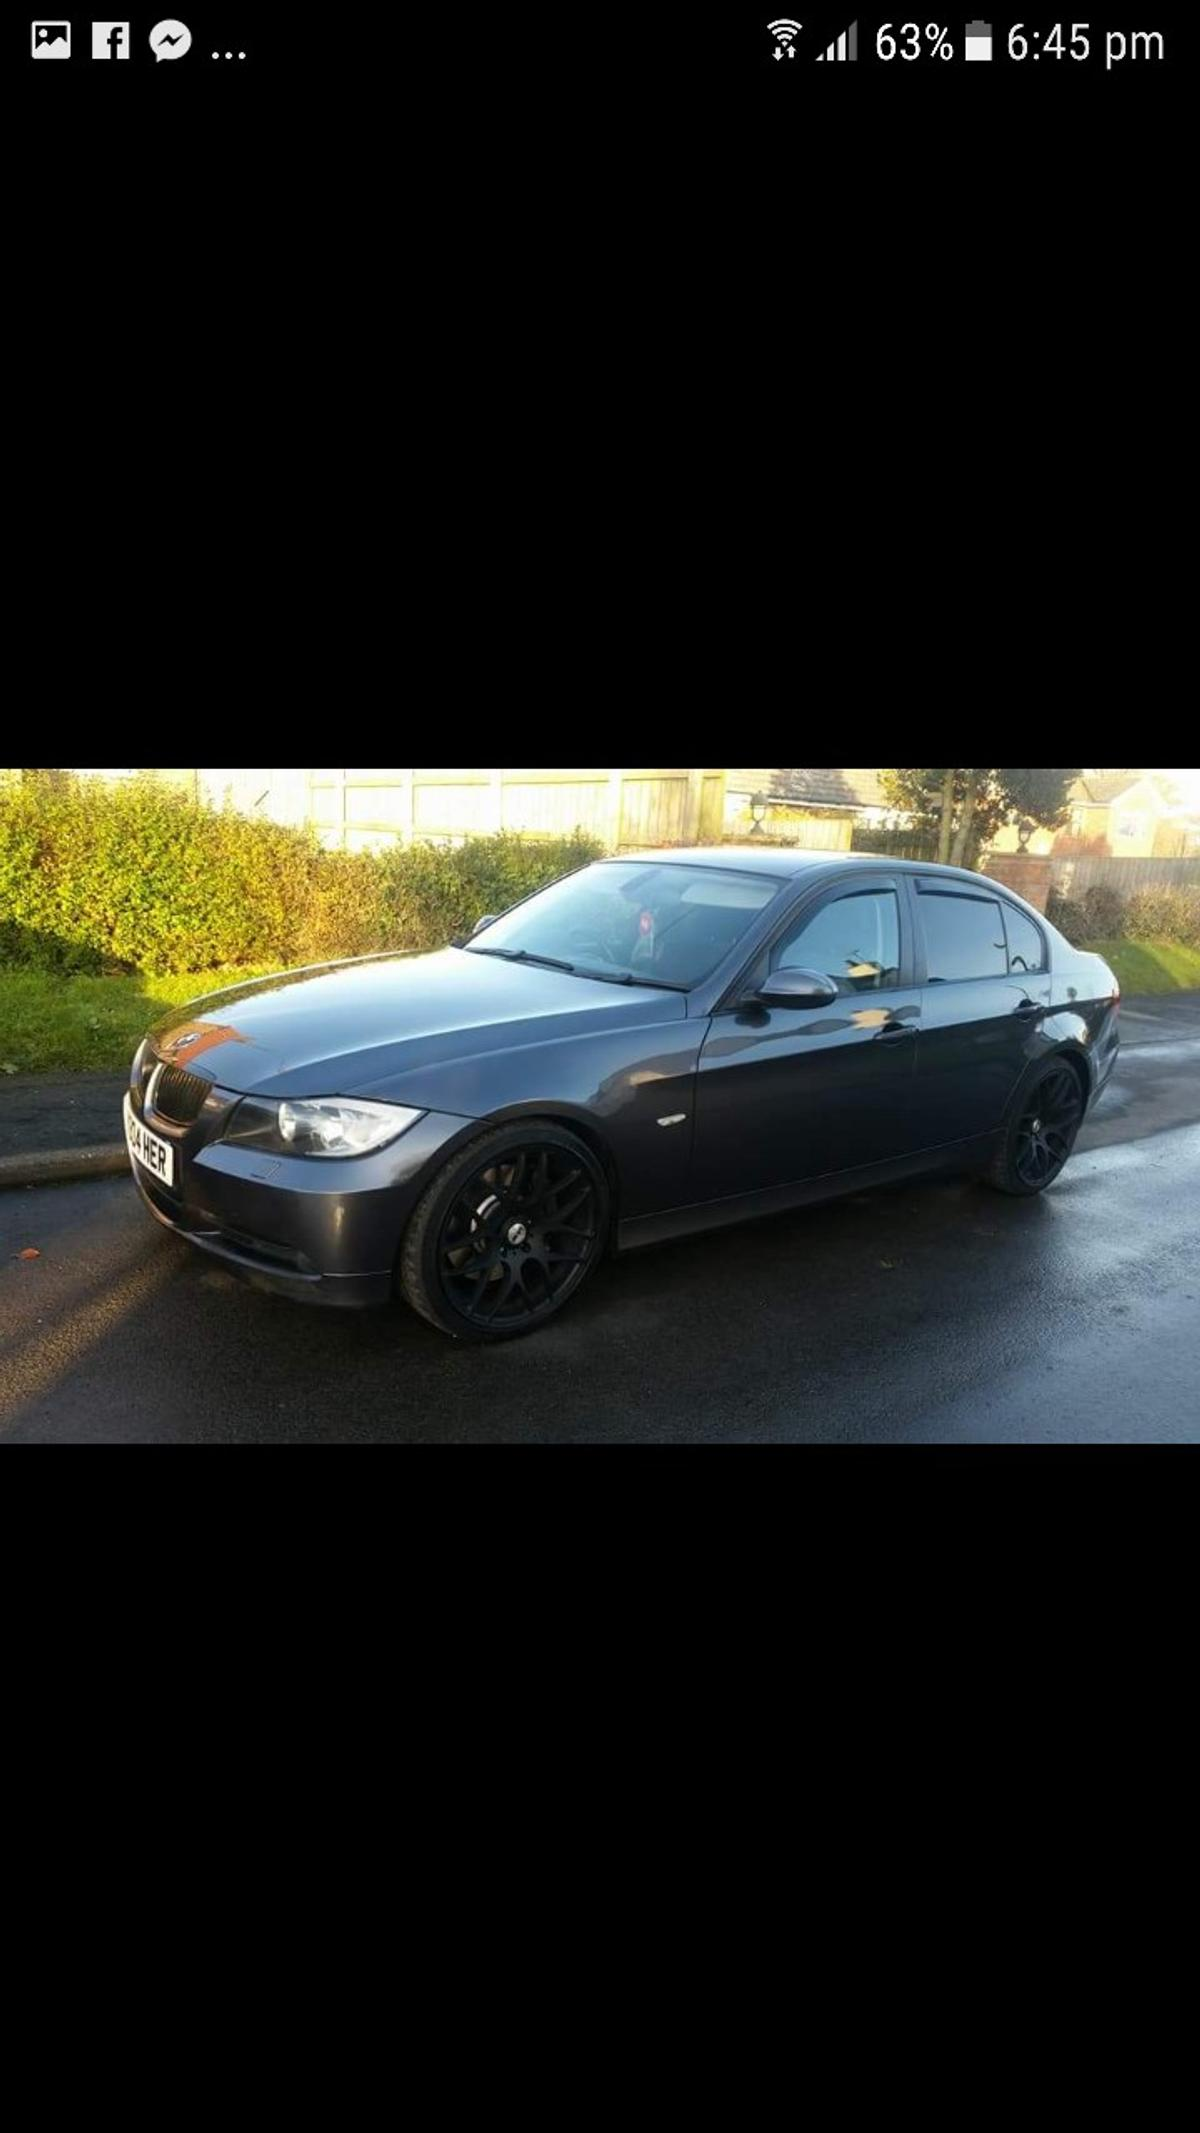 2007 bmw 335d in Nottinghamshire for £6,000 00 for sale - Shpock